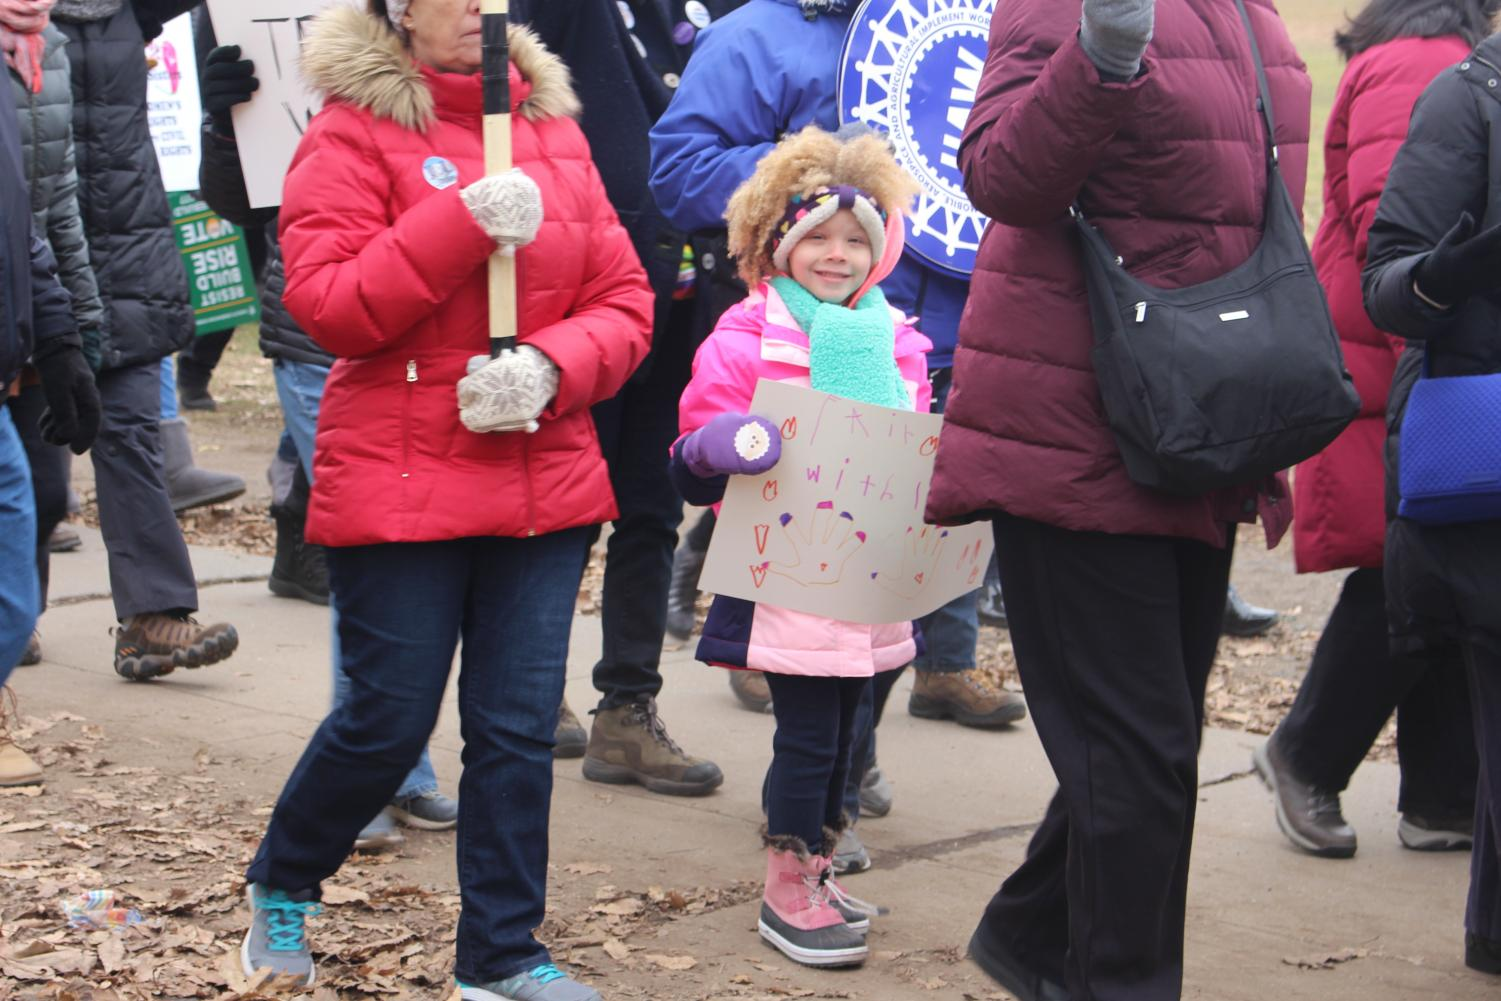 More+than+2%2C000+people+showed+up+to+last+Saturday%27s+Women%27s+March+in+Hartford%2C+according+to+state+police.+